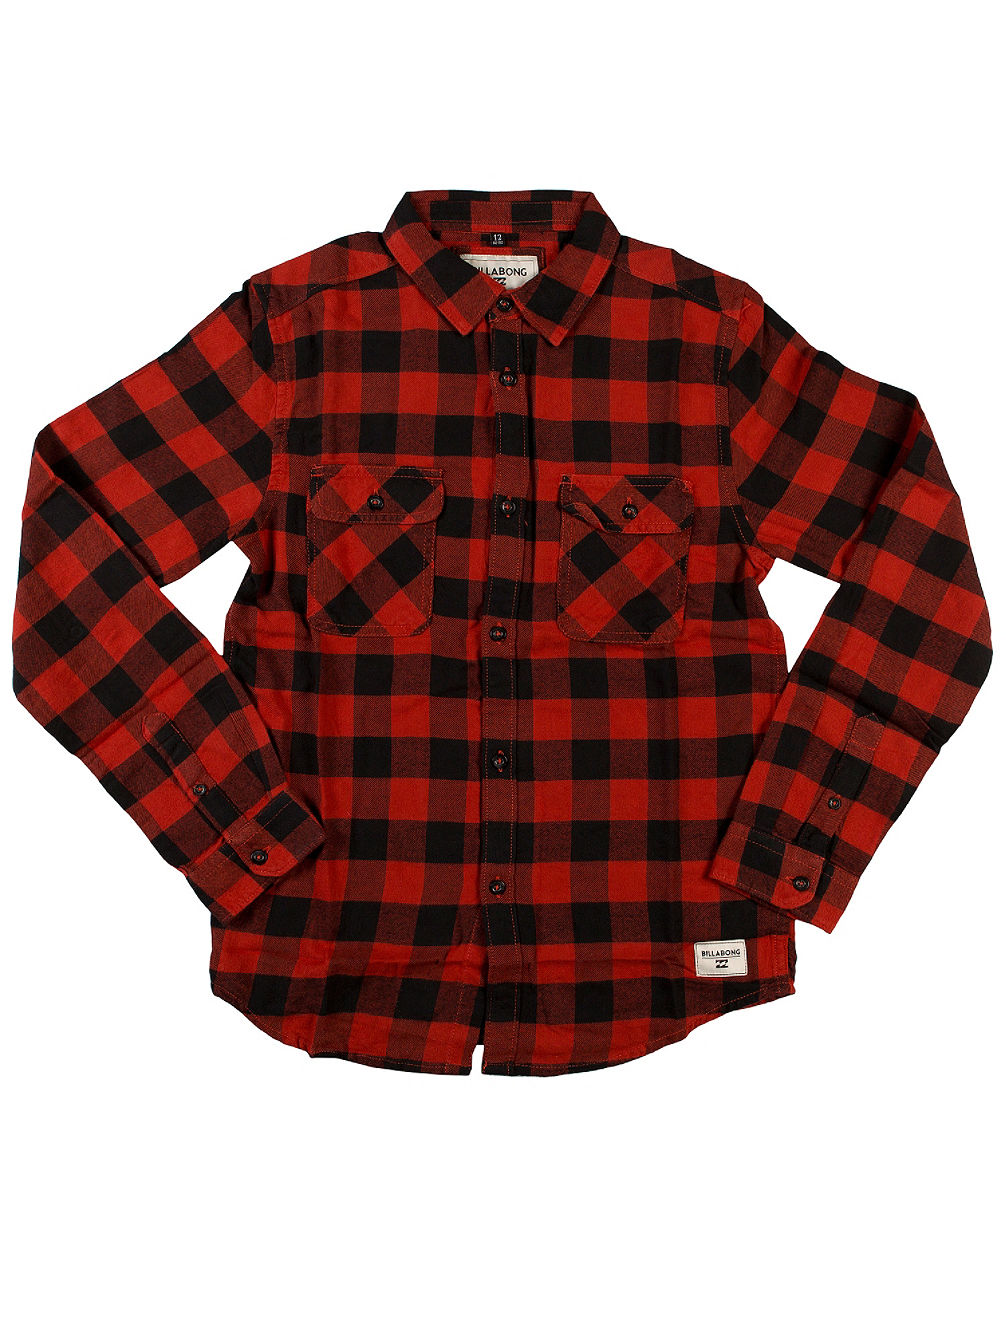 All Day Flannel Shirt LS Boys